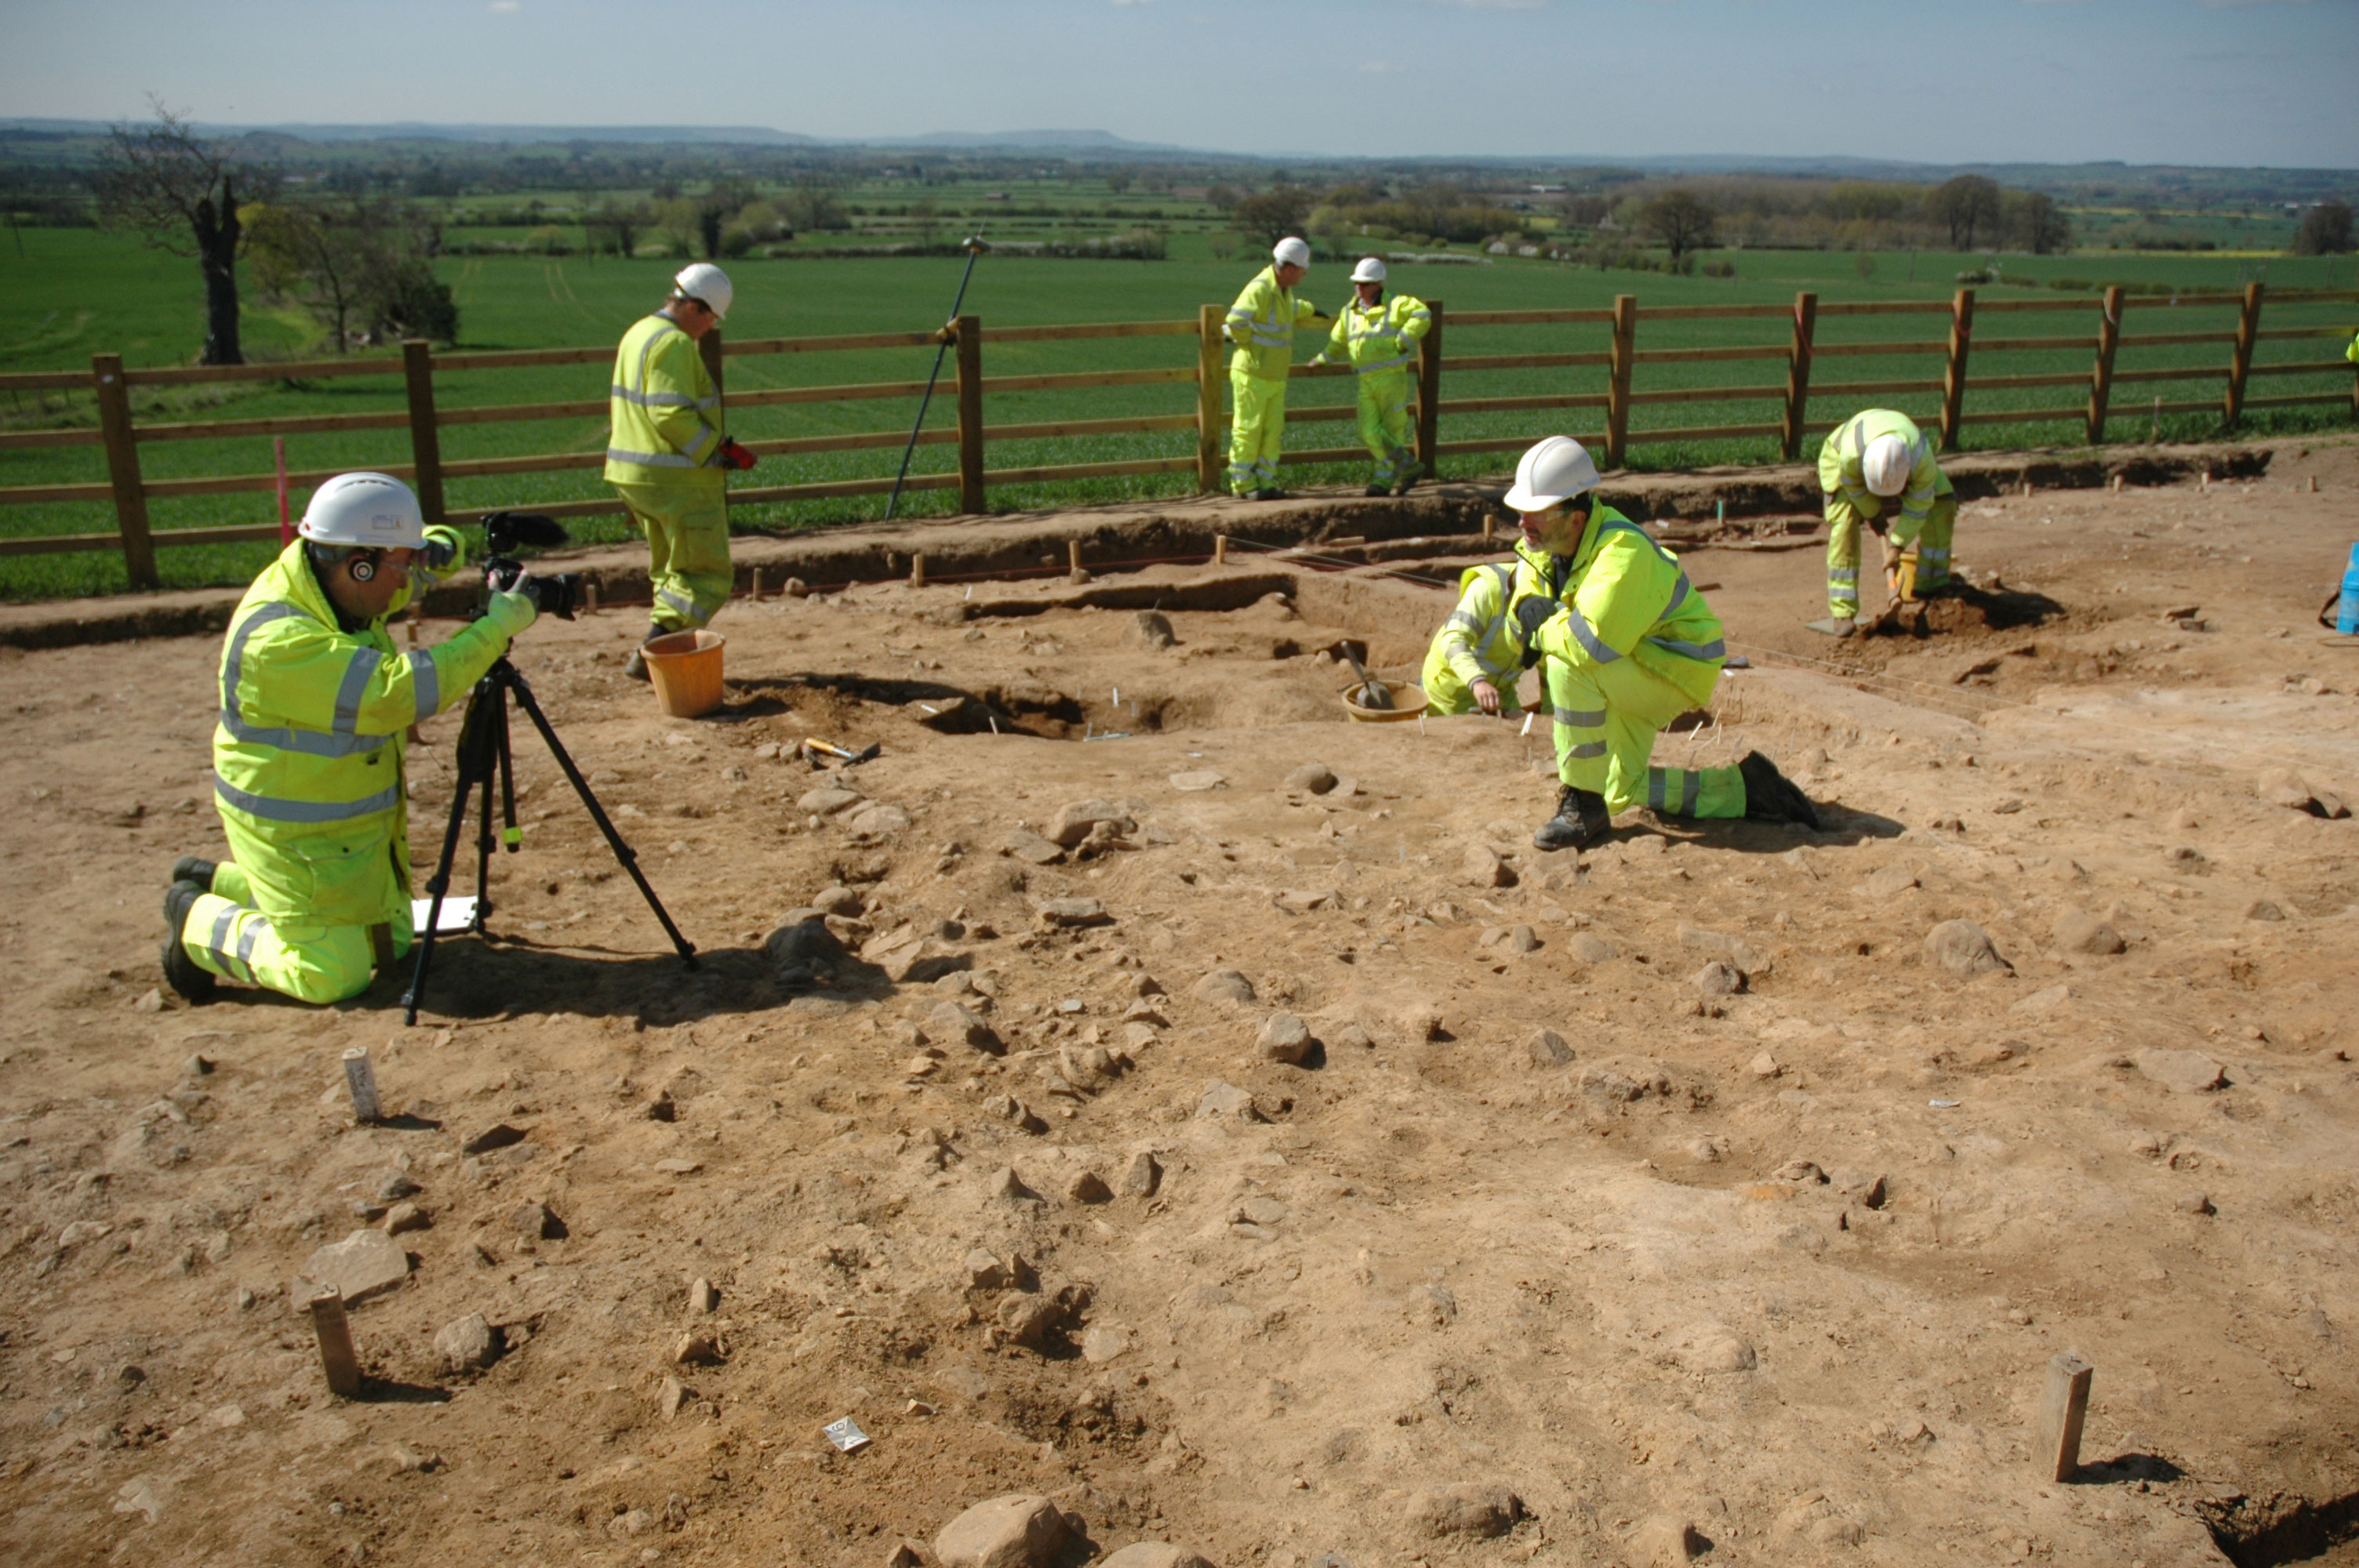 Britain's 10,000-Year-Old Road Mesolithic-Campsite-Discovered